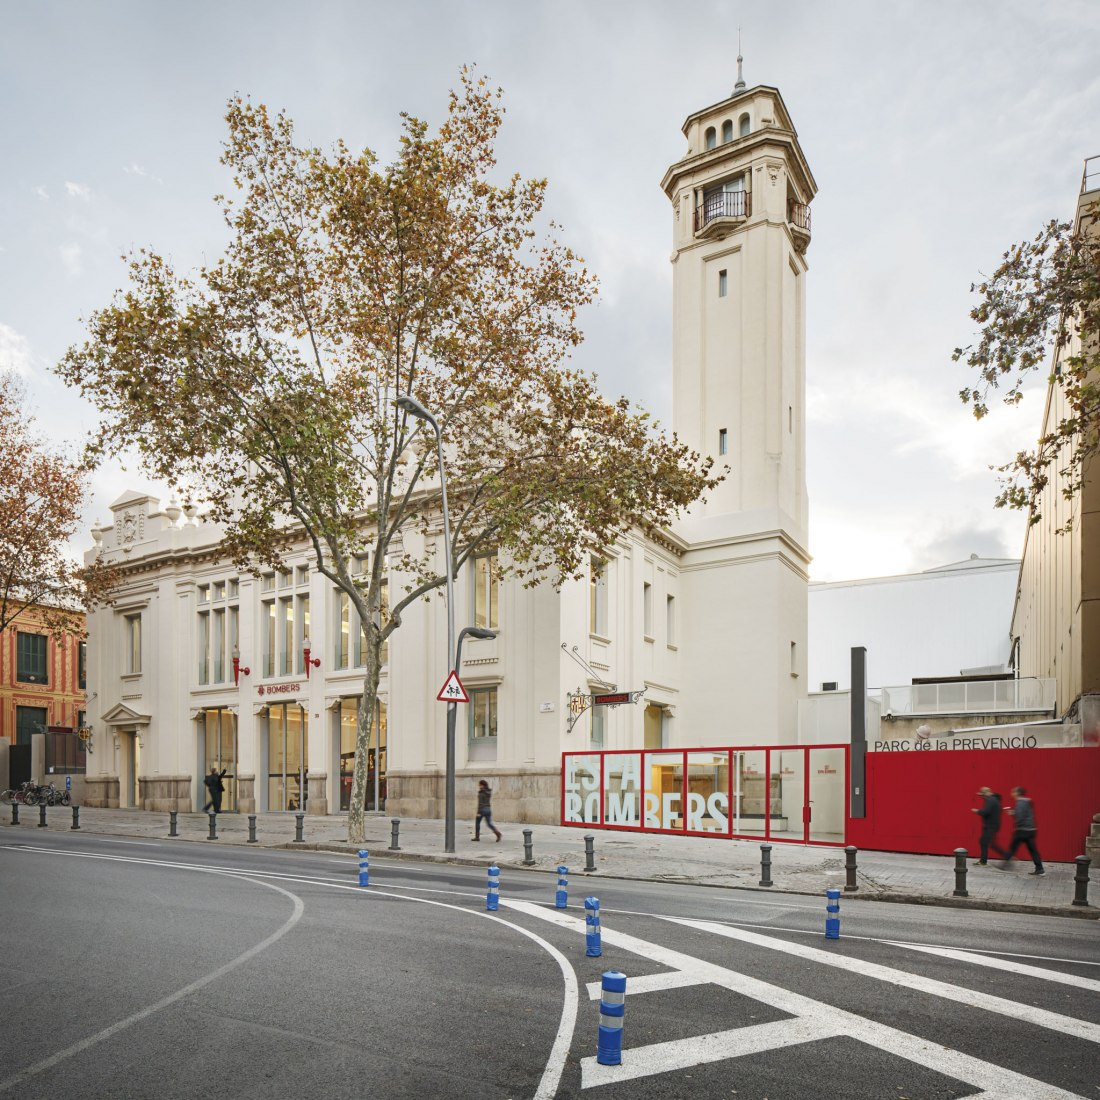 Renovation of an Old Fire Station of the Poble Sec in Barcelona by Roldán + Berengué Architects. Photography © Jordi Surroca